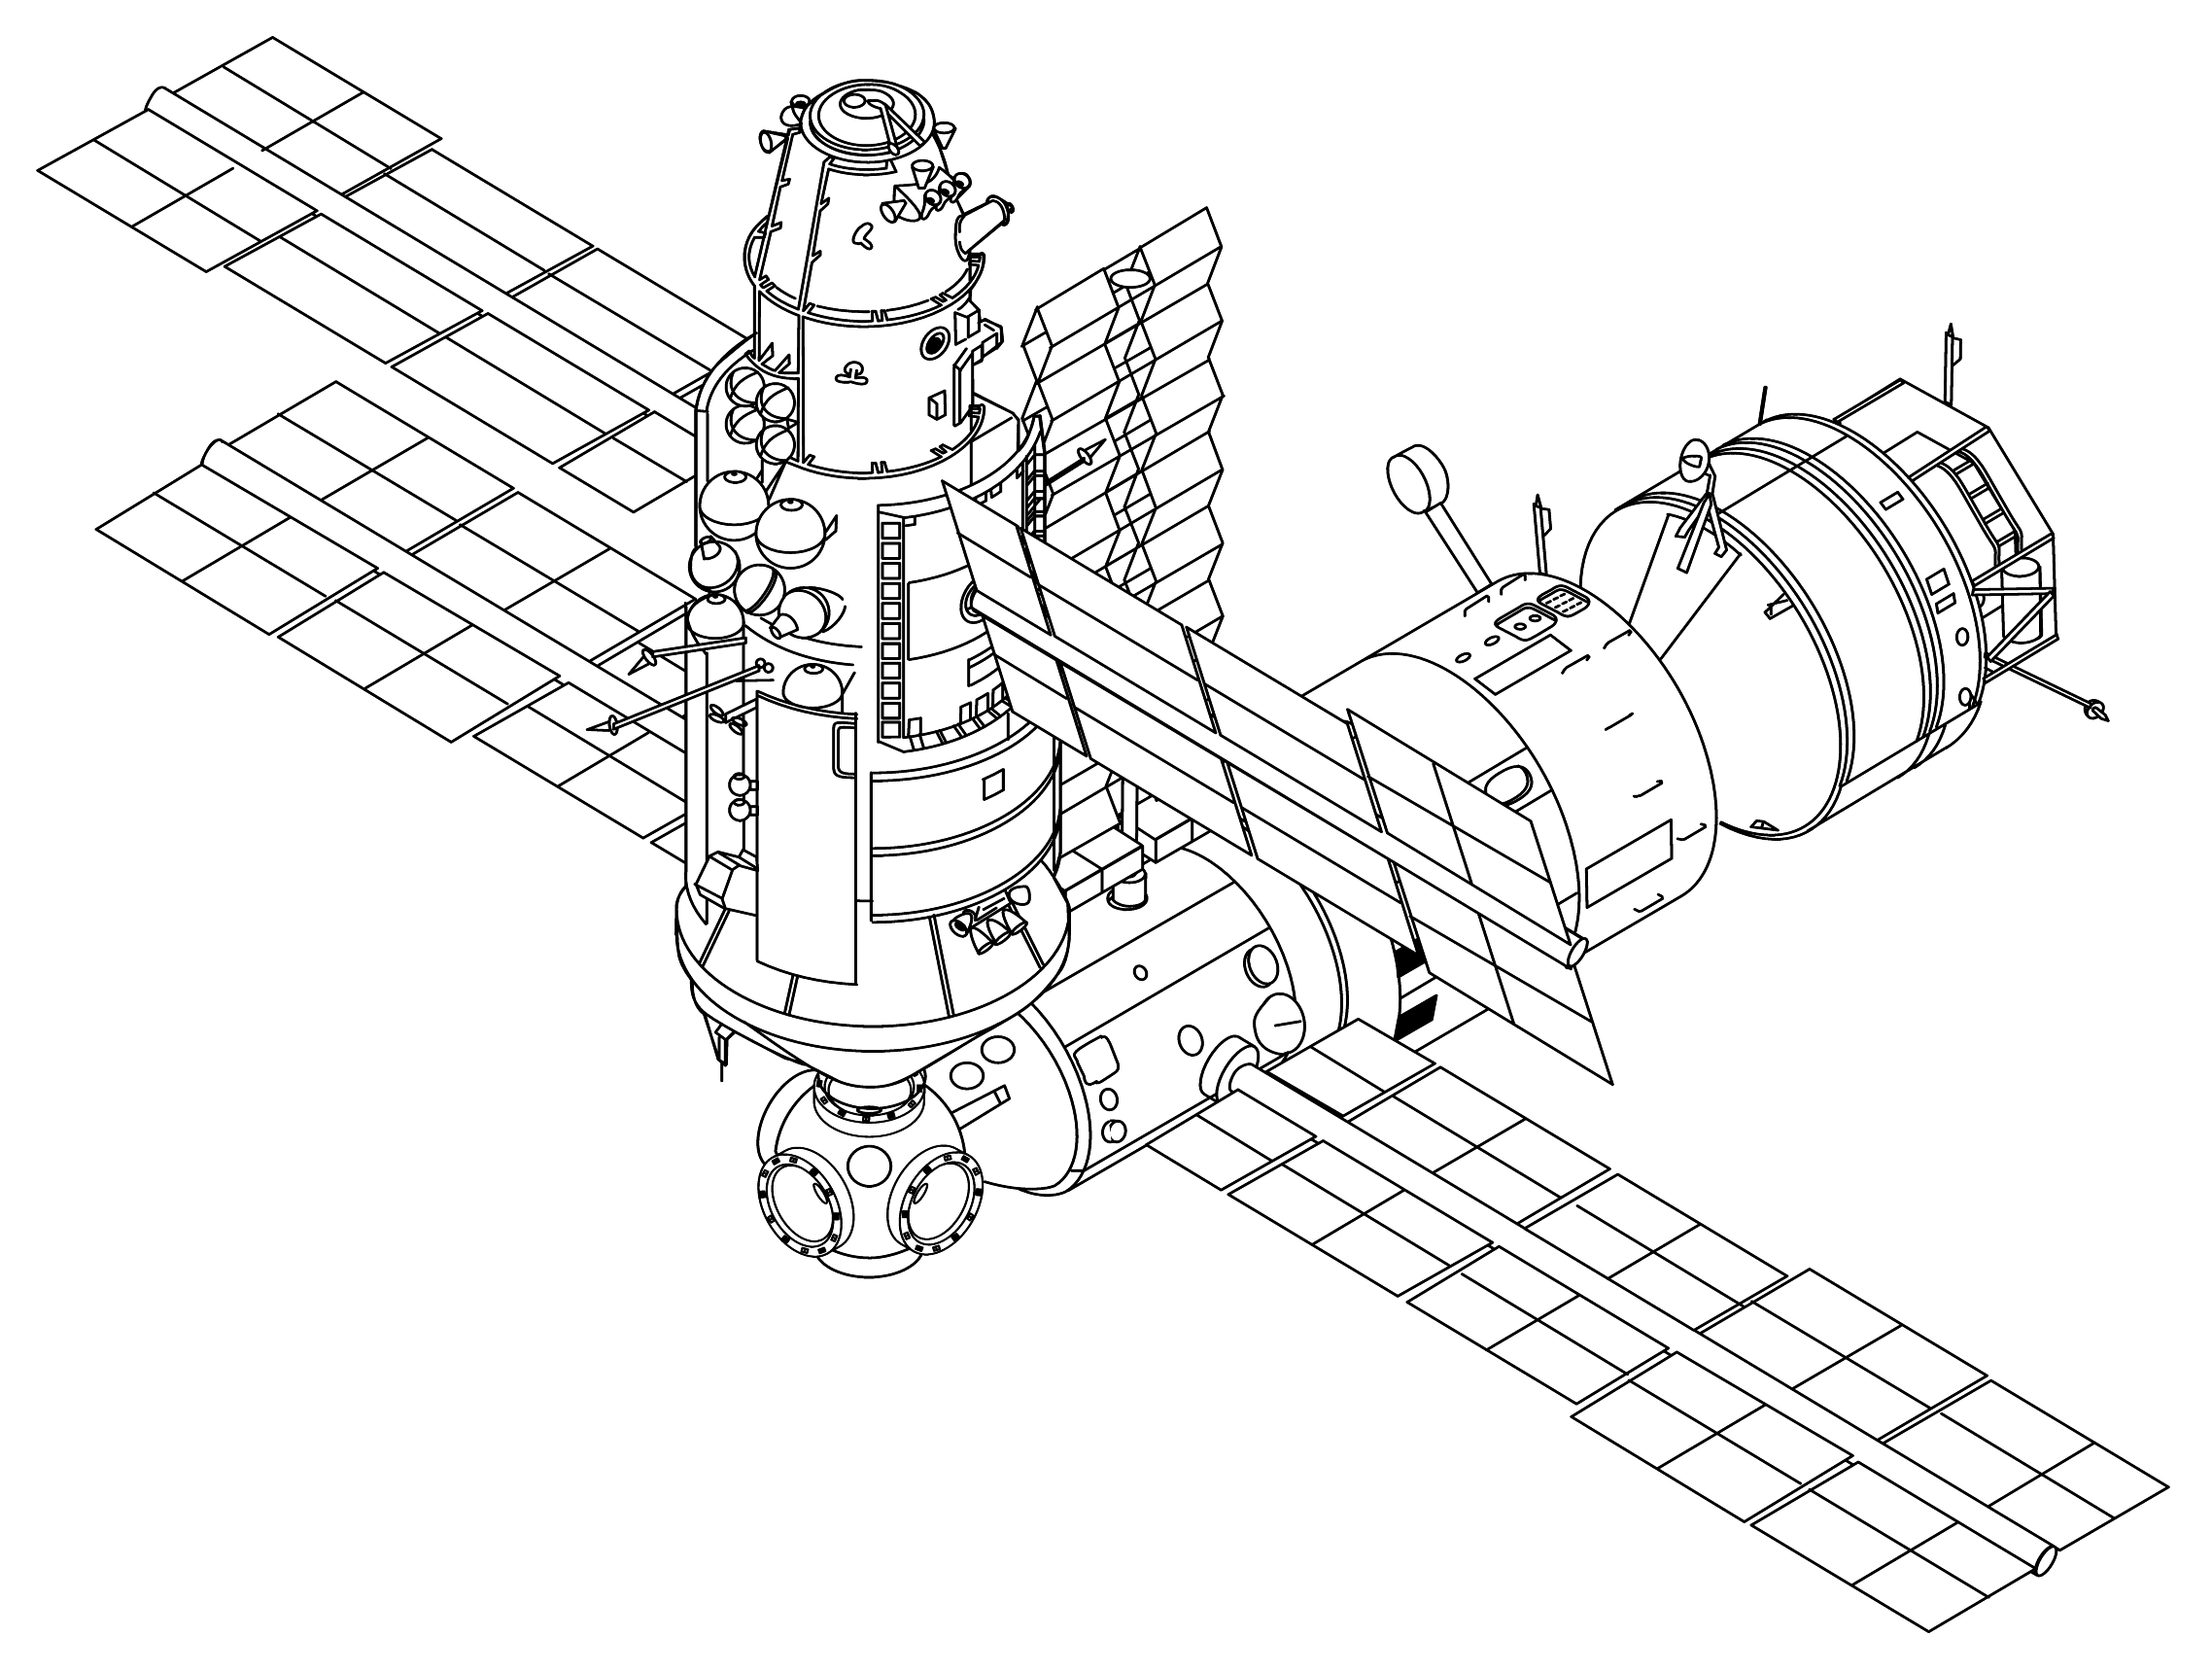 Space Station Dimension Drawing - Pics about space